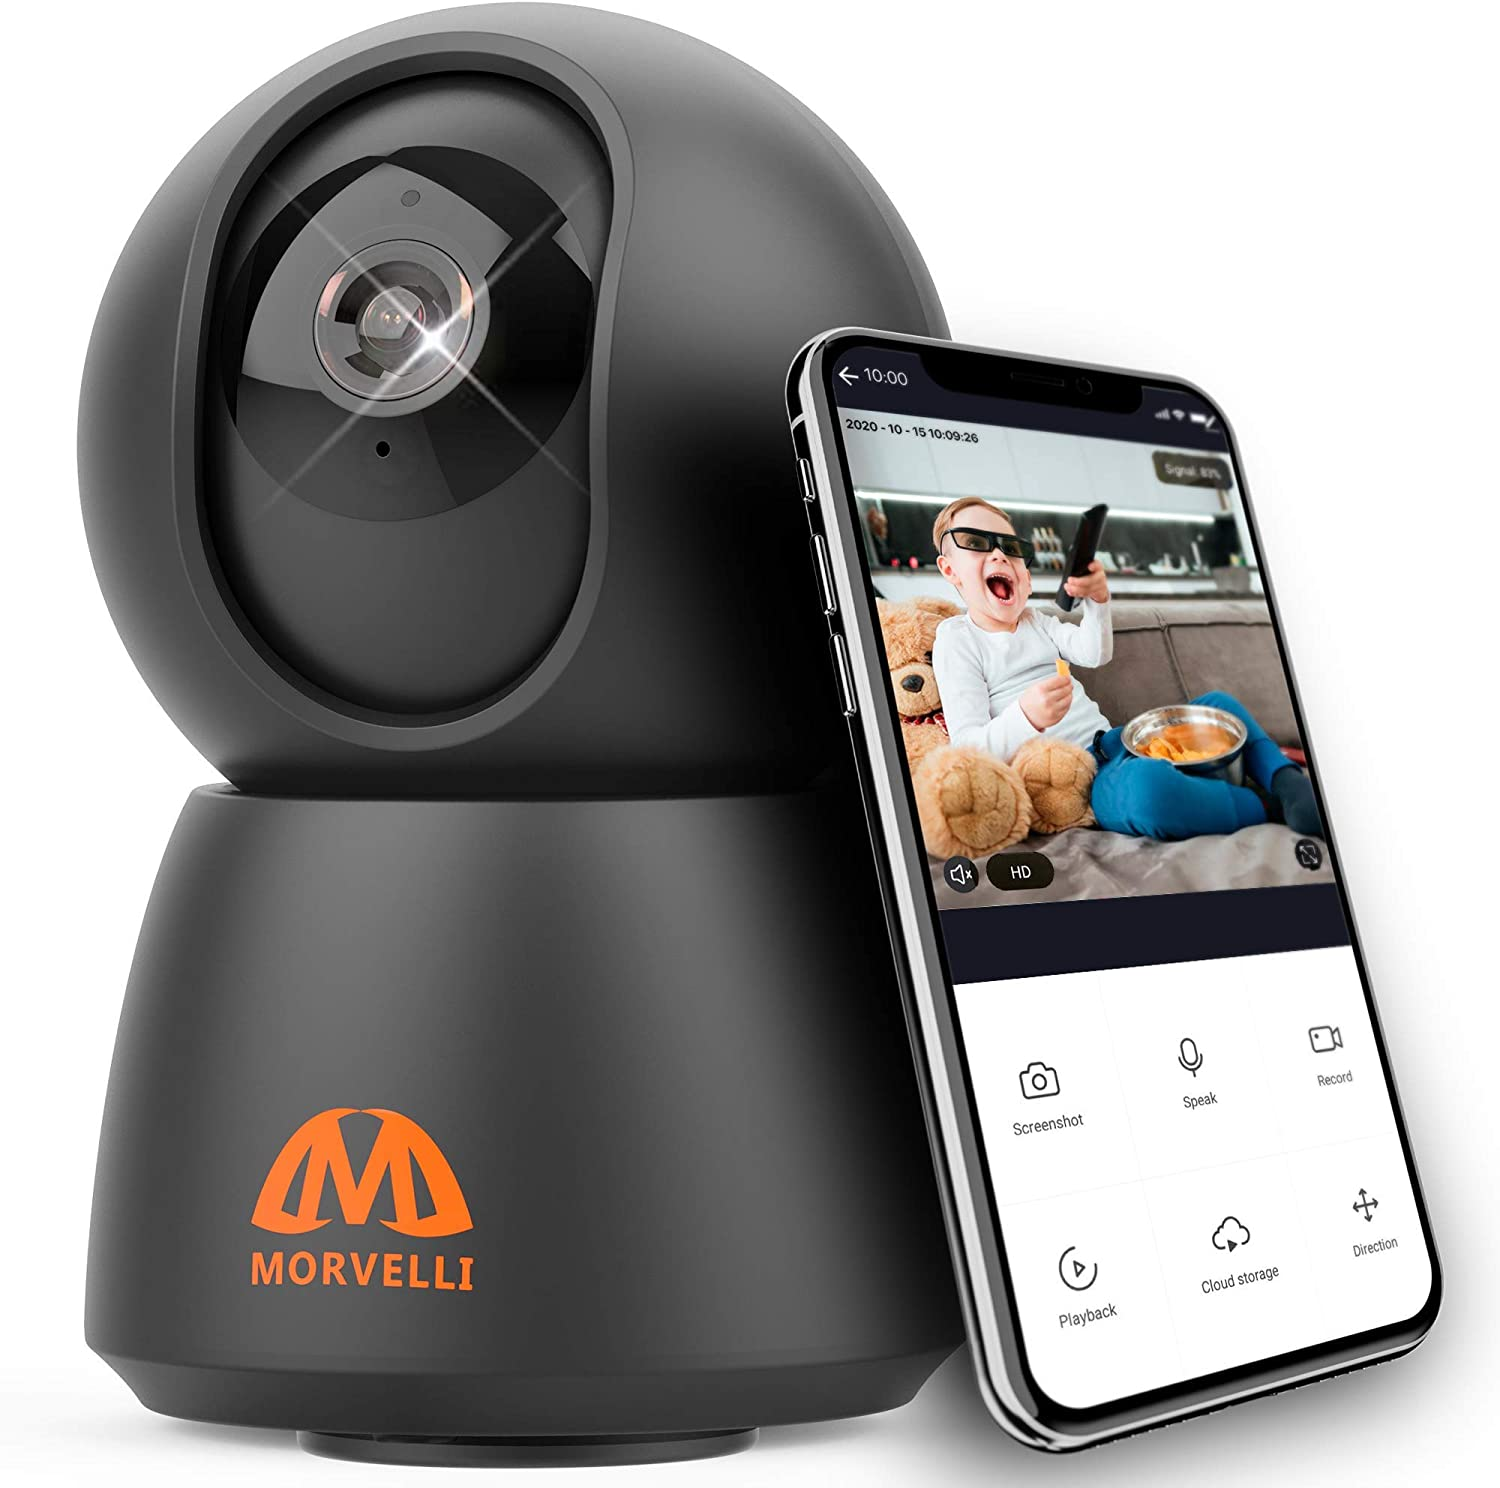 Morvelli FHD30 WiFi Smart Home Security Camera 1080P Indoor Wireless Baby Monitor with Phone App, Night Vision, 2-Way Audio for Nanny, Pet, Dog, Cat, Works with Alexa and Google iOS Android